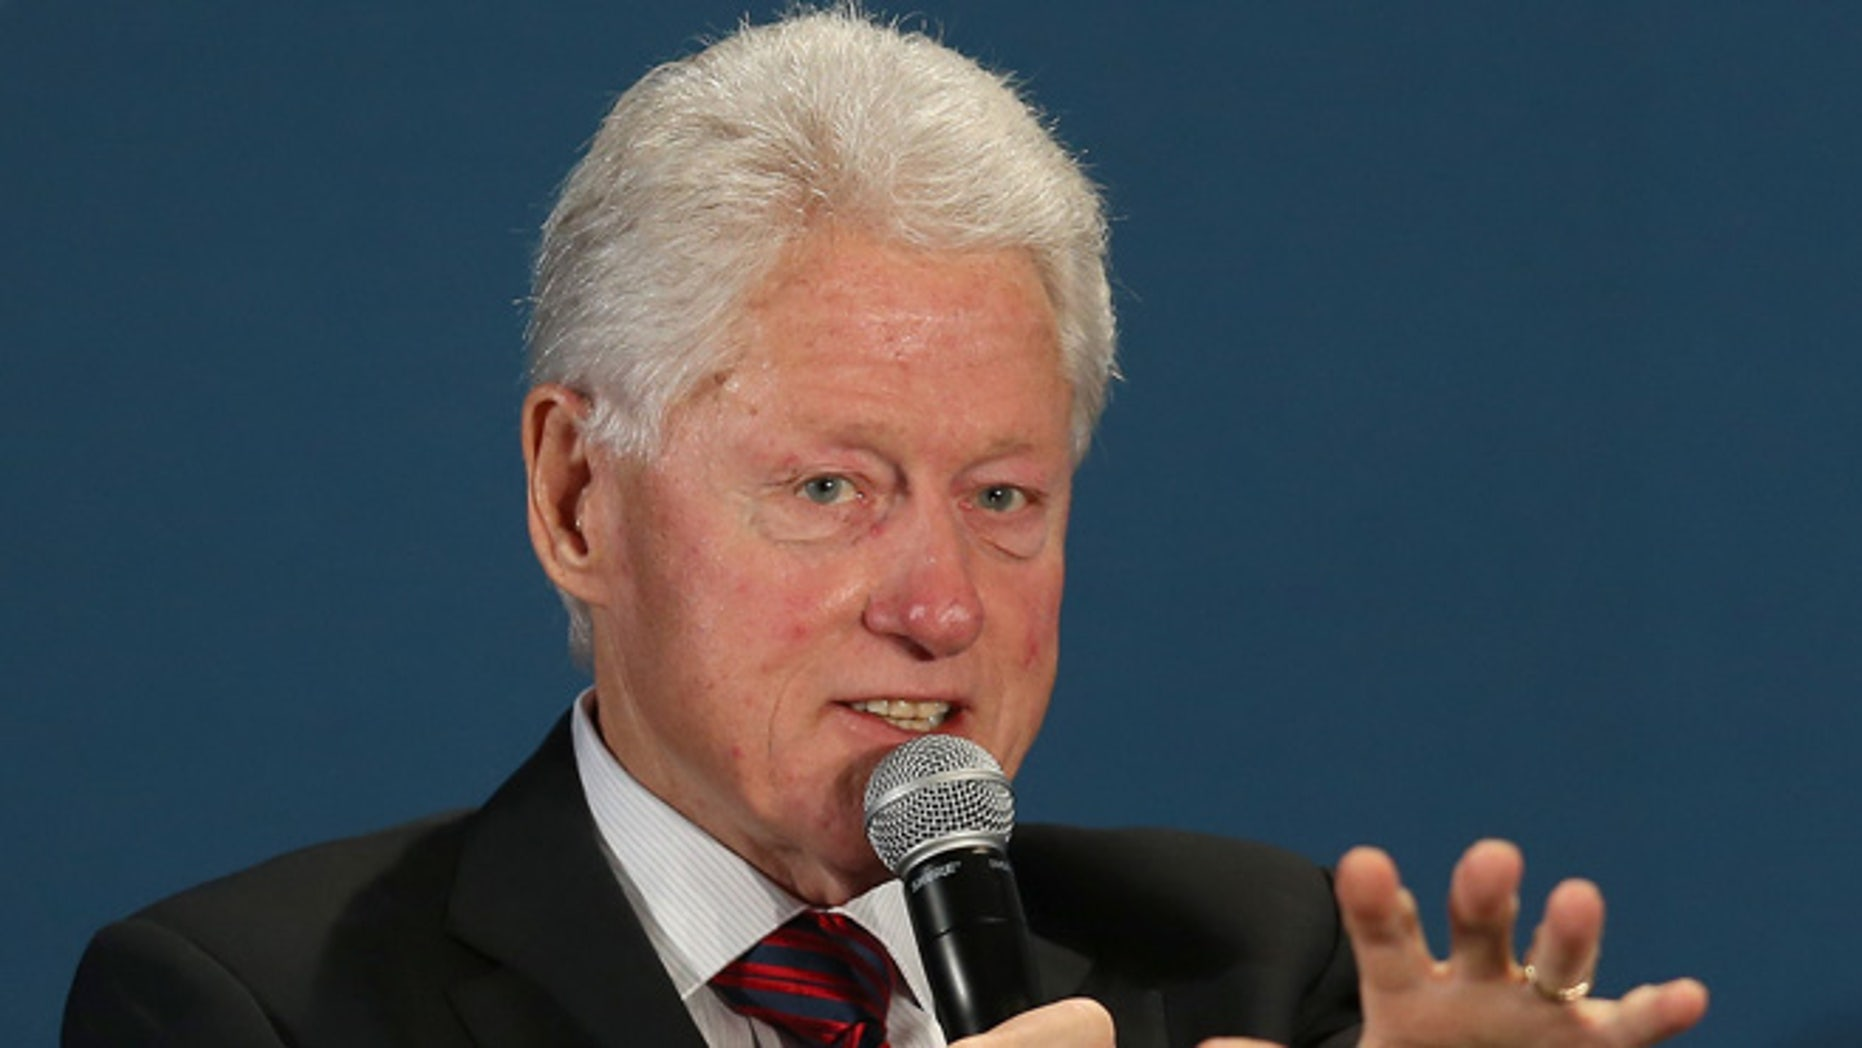 CORAL GABLES, FL - DECEMBER 11:  Former President Bill Clinton speaks during the  Clinton Foundations Future of the Americas summit at the University of Miami  on December 11, 2014 in Coral Gables, Florida. The summit is bringing together leaders from the private, public, and civic sectors across Latin America, the Caribbean, Canada, and the United States to work on economic prosperity, investment, and innovation opportunities across the Western Hemisphere.  (Photo by Joe Raedle/Getty Images)